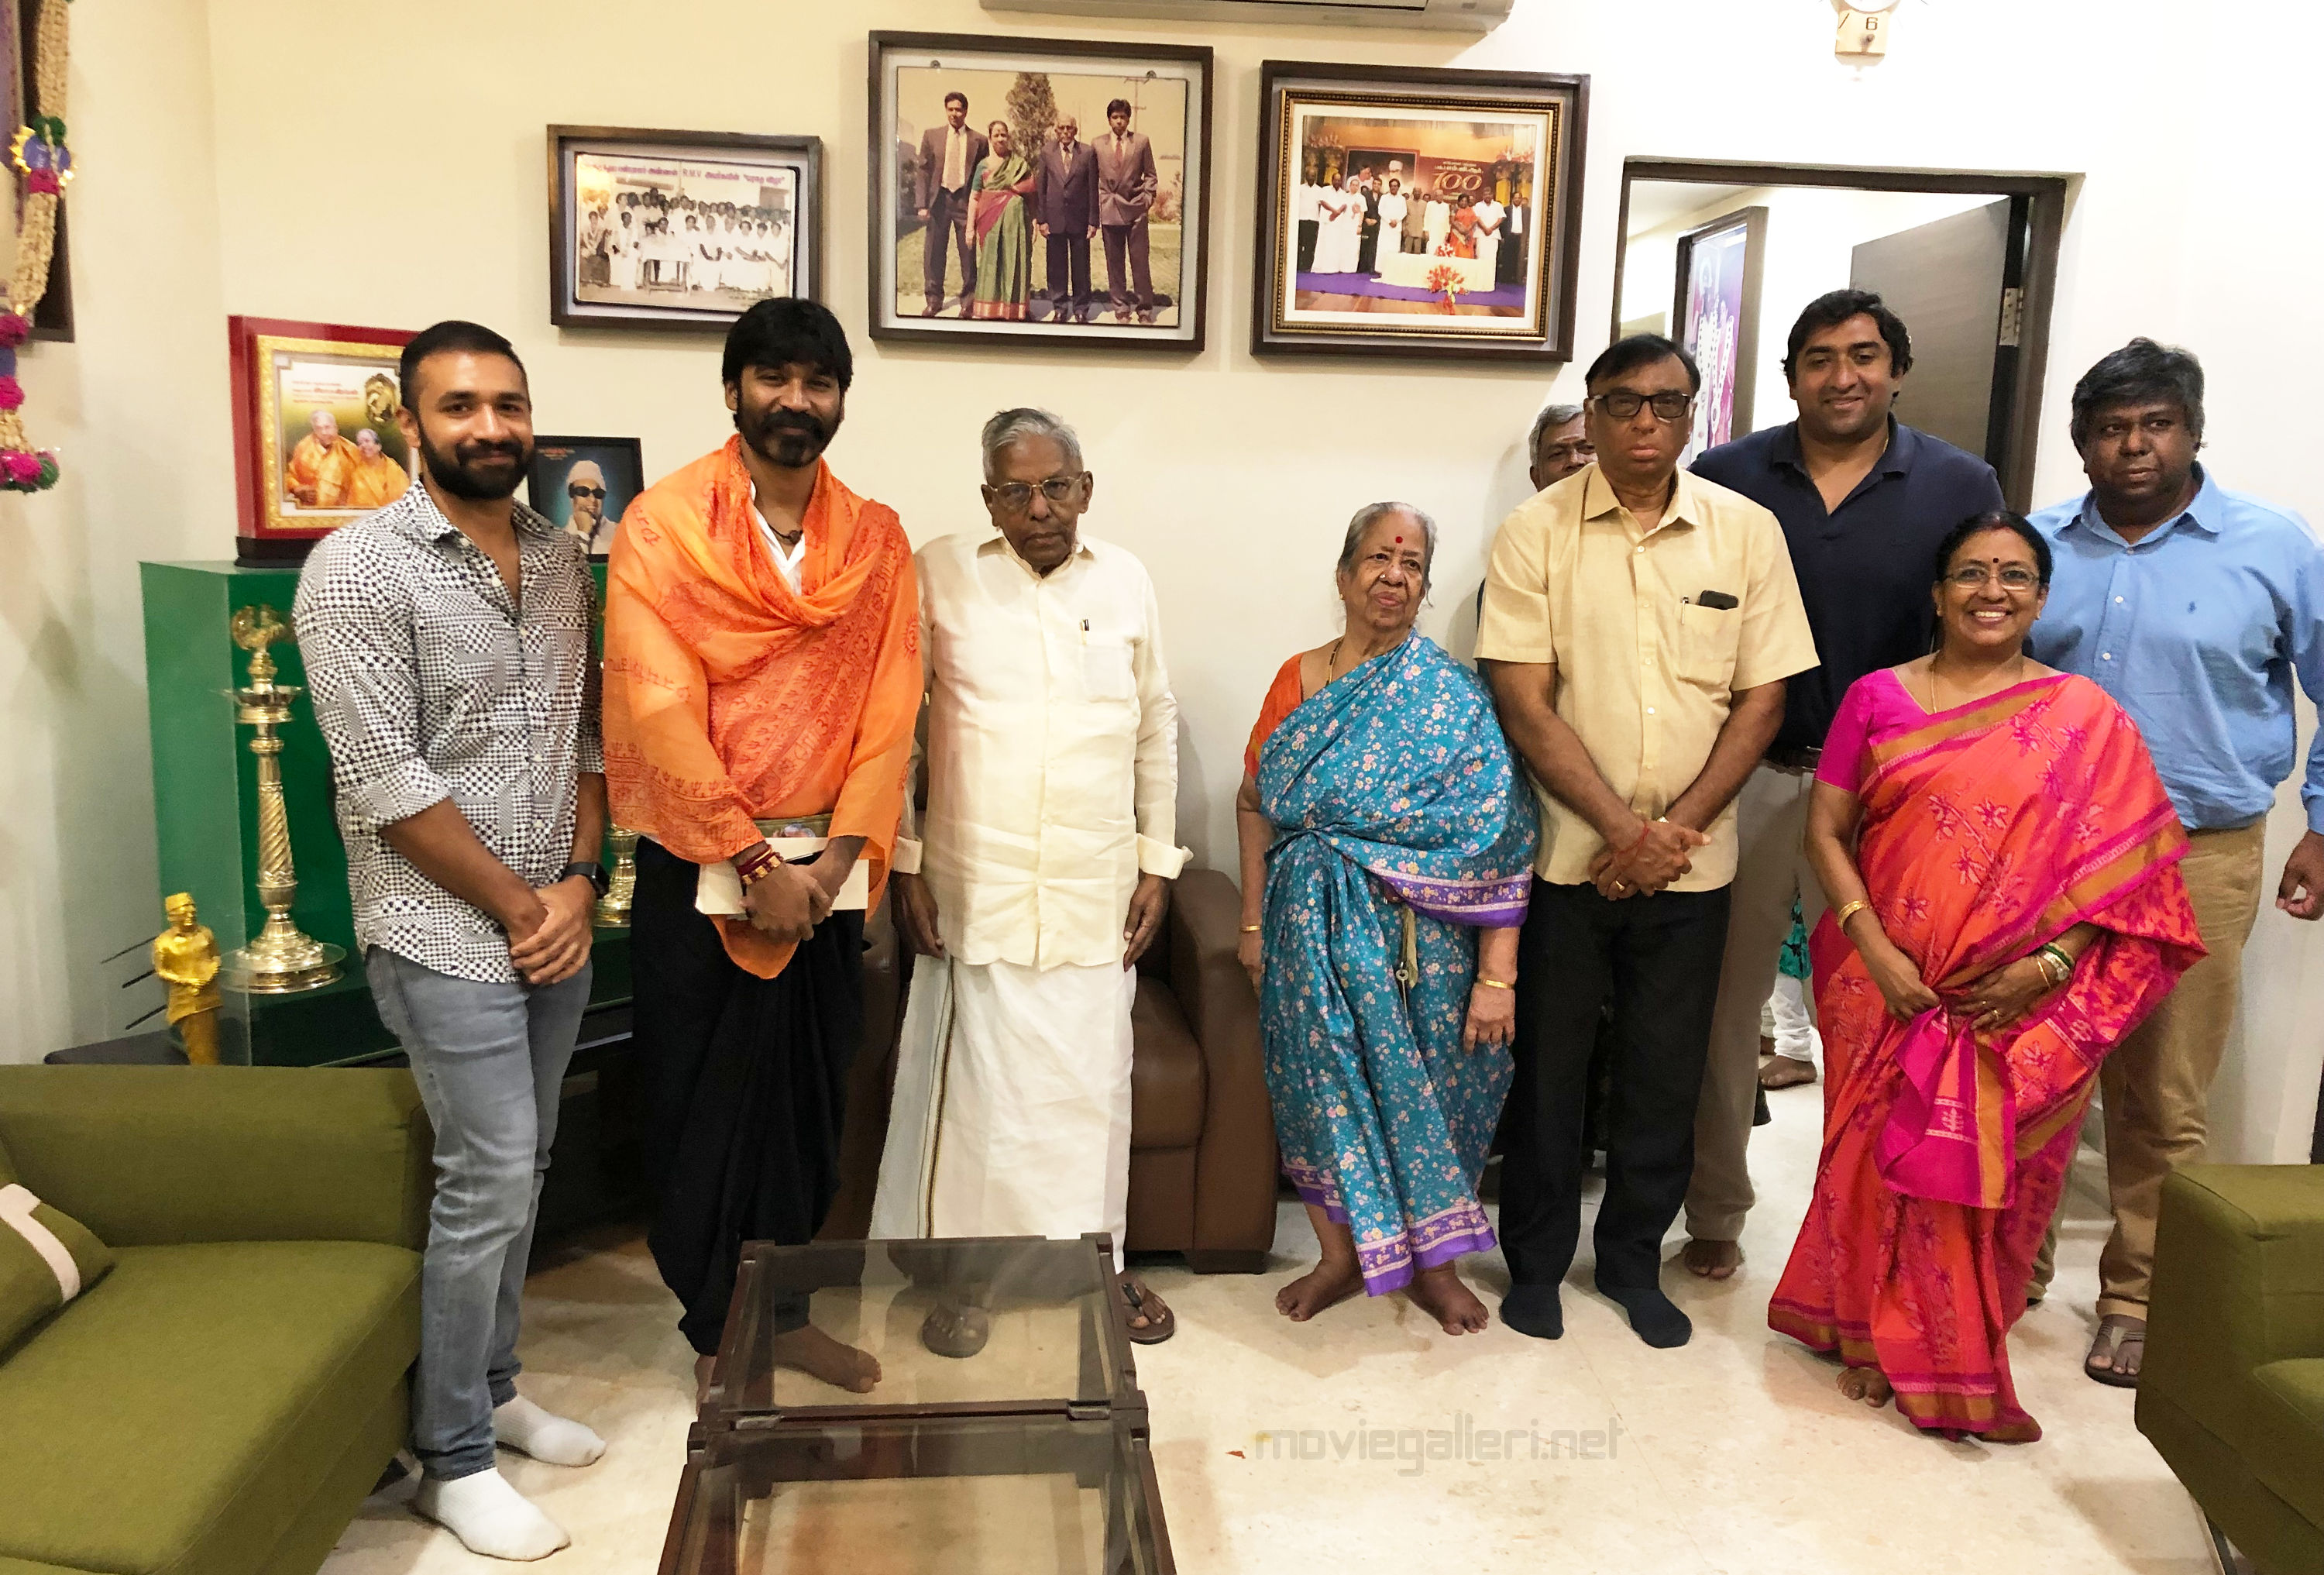 Actor Dhanush untitled projects produced by Sathya Jyothi Films Productions